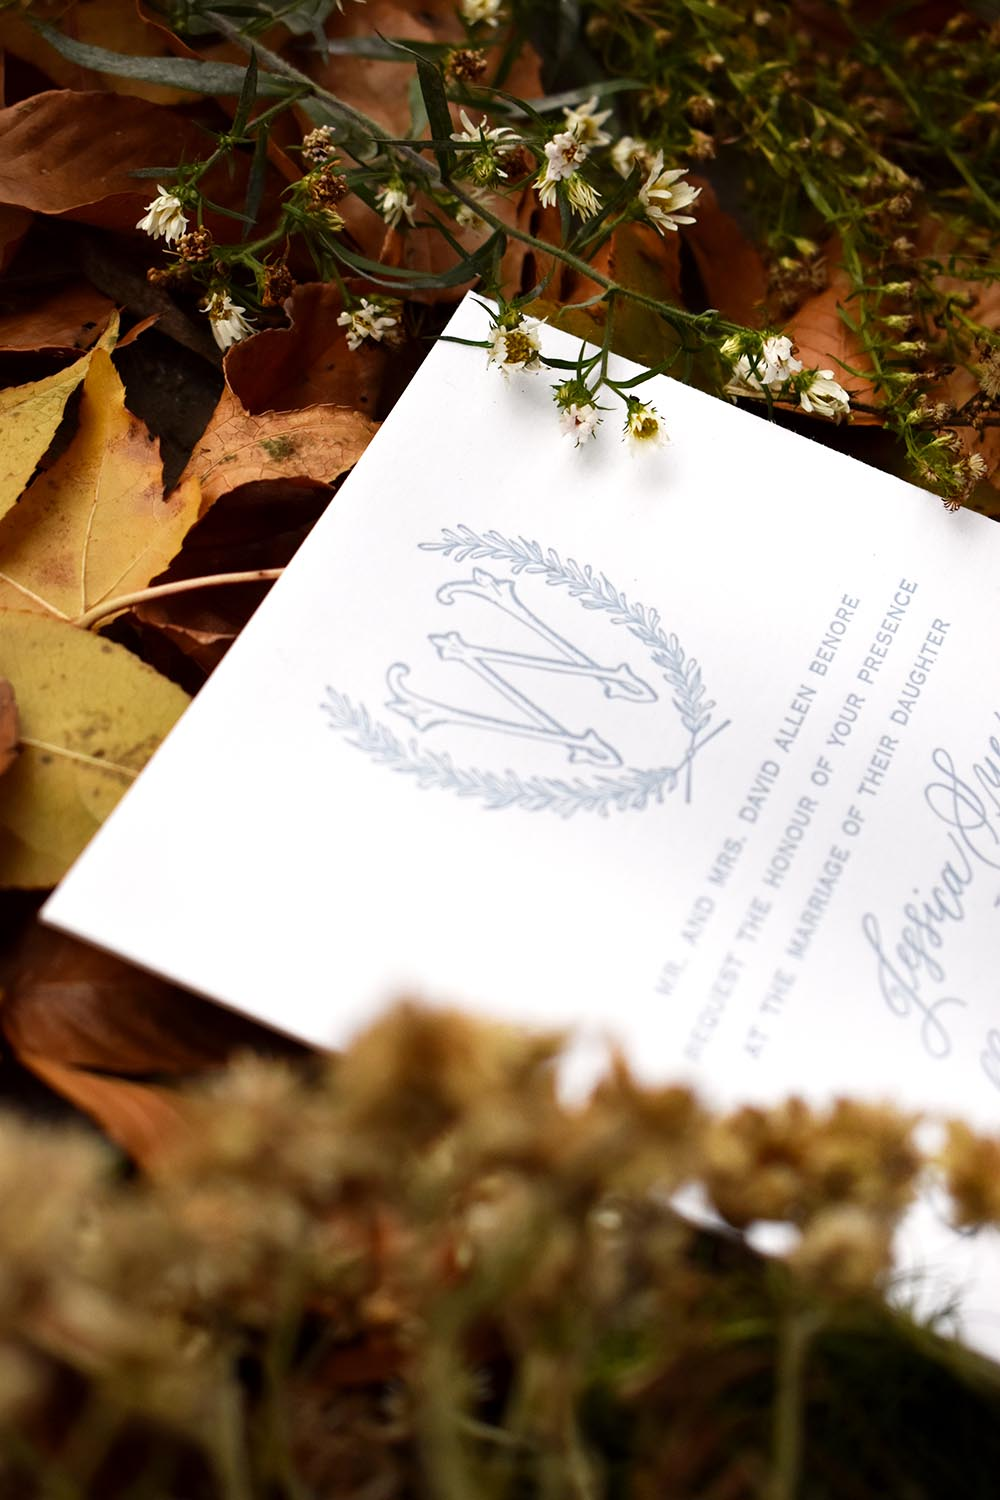 Custom emblem made for a couples invitation suite and wedding theme printed by a letterpress.